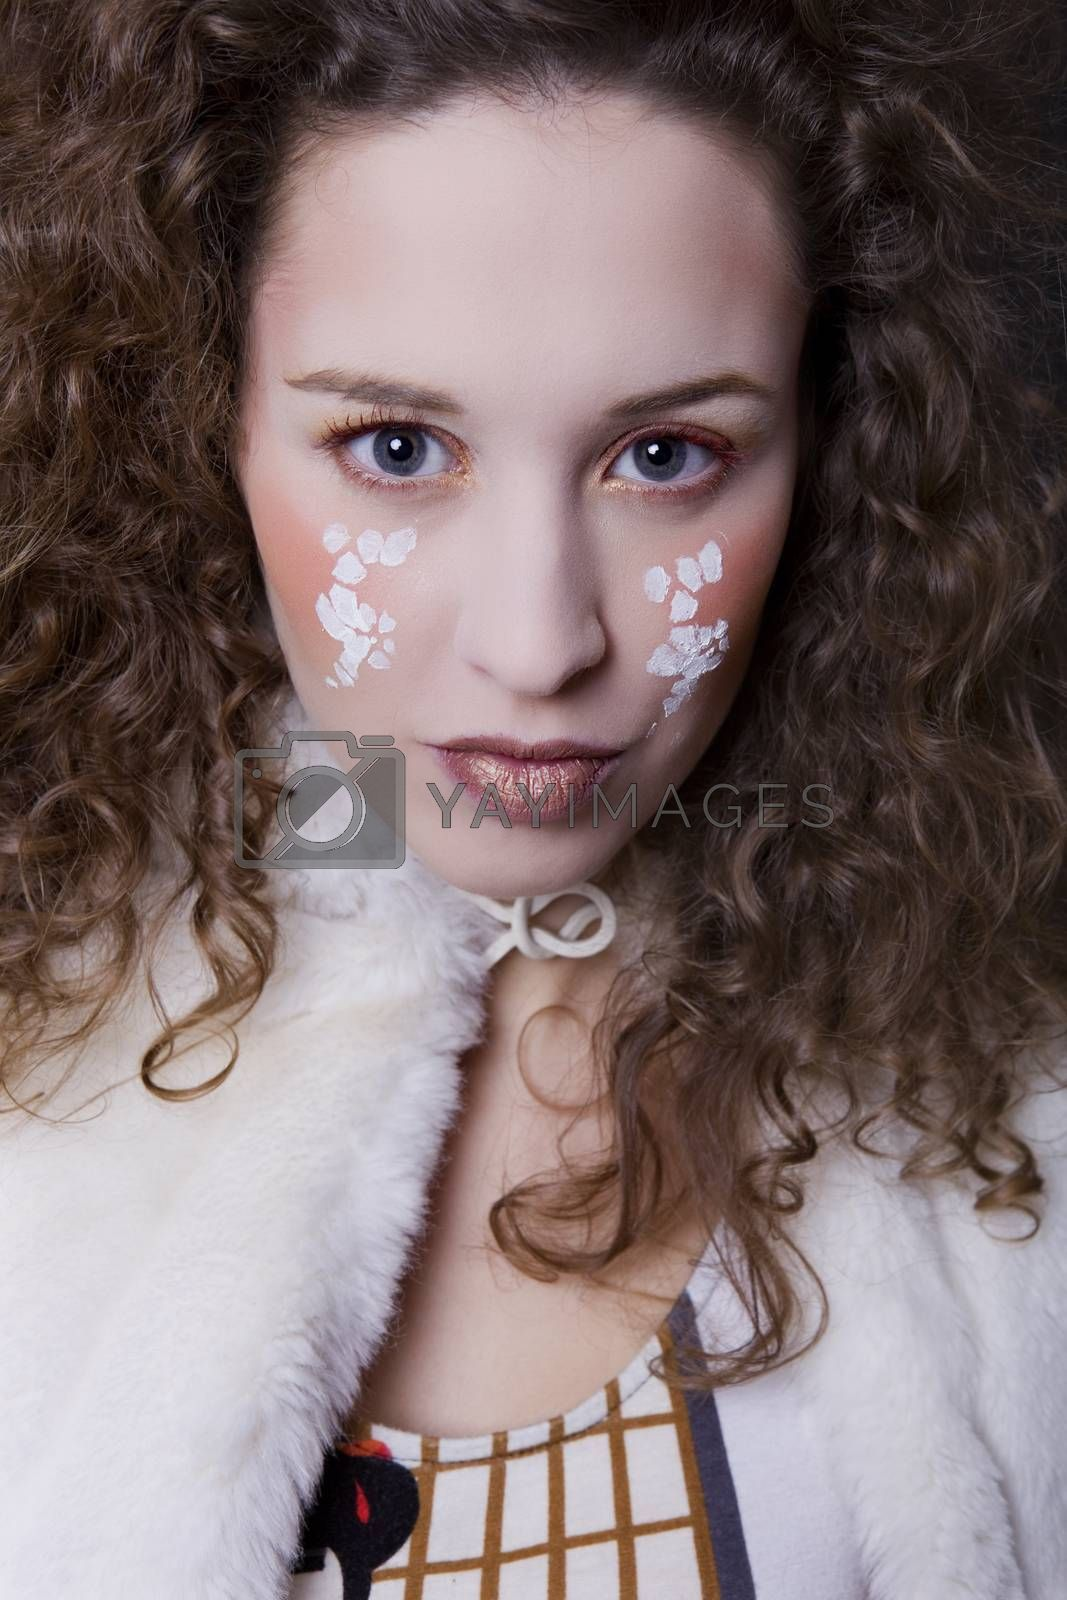 Royalty free image of painted face by zittto